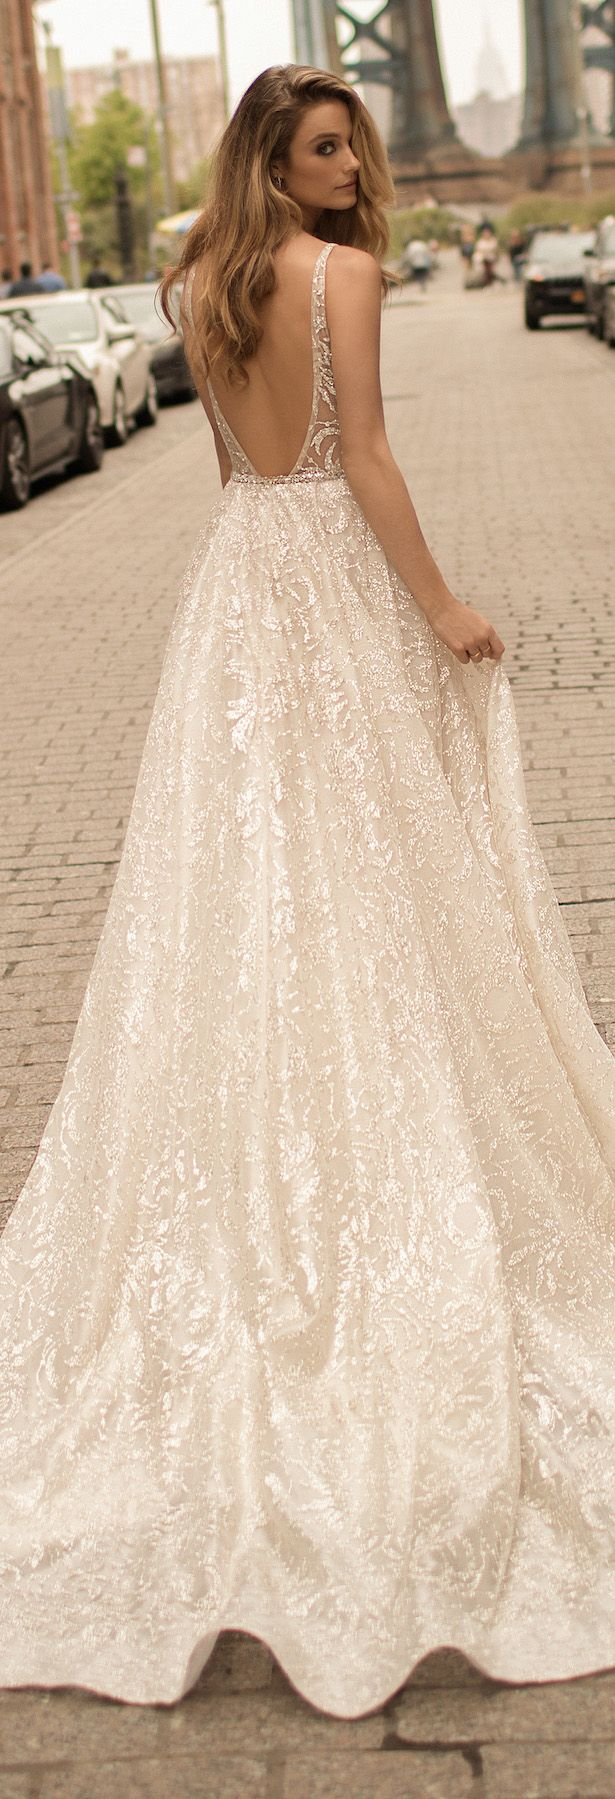 Berta wedding dress collection spring vestidos de baile